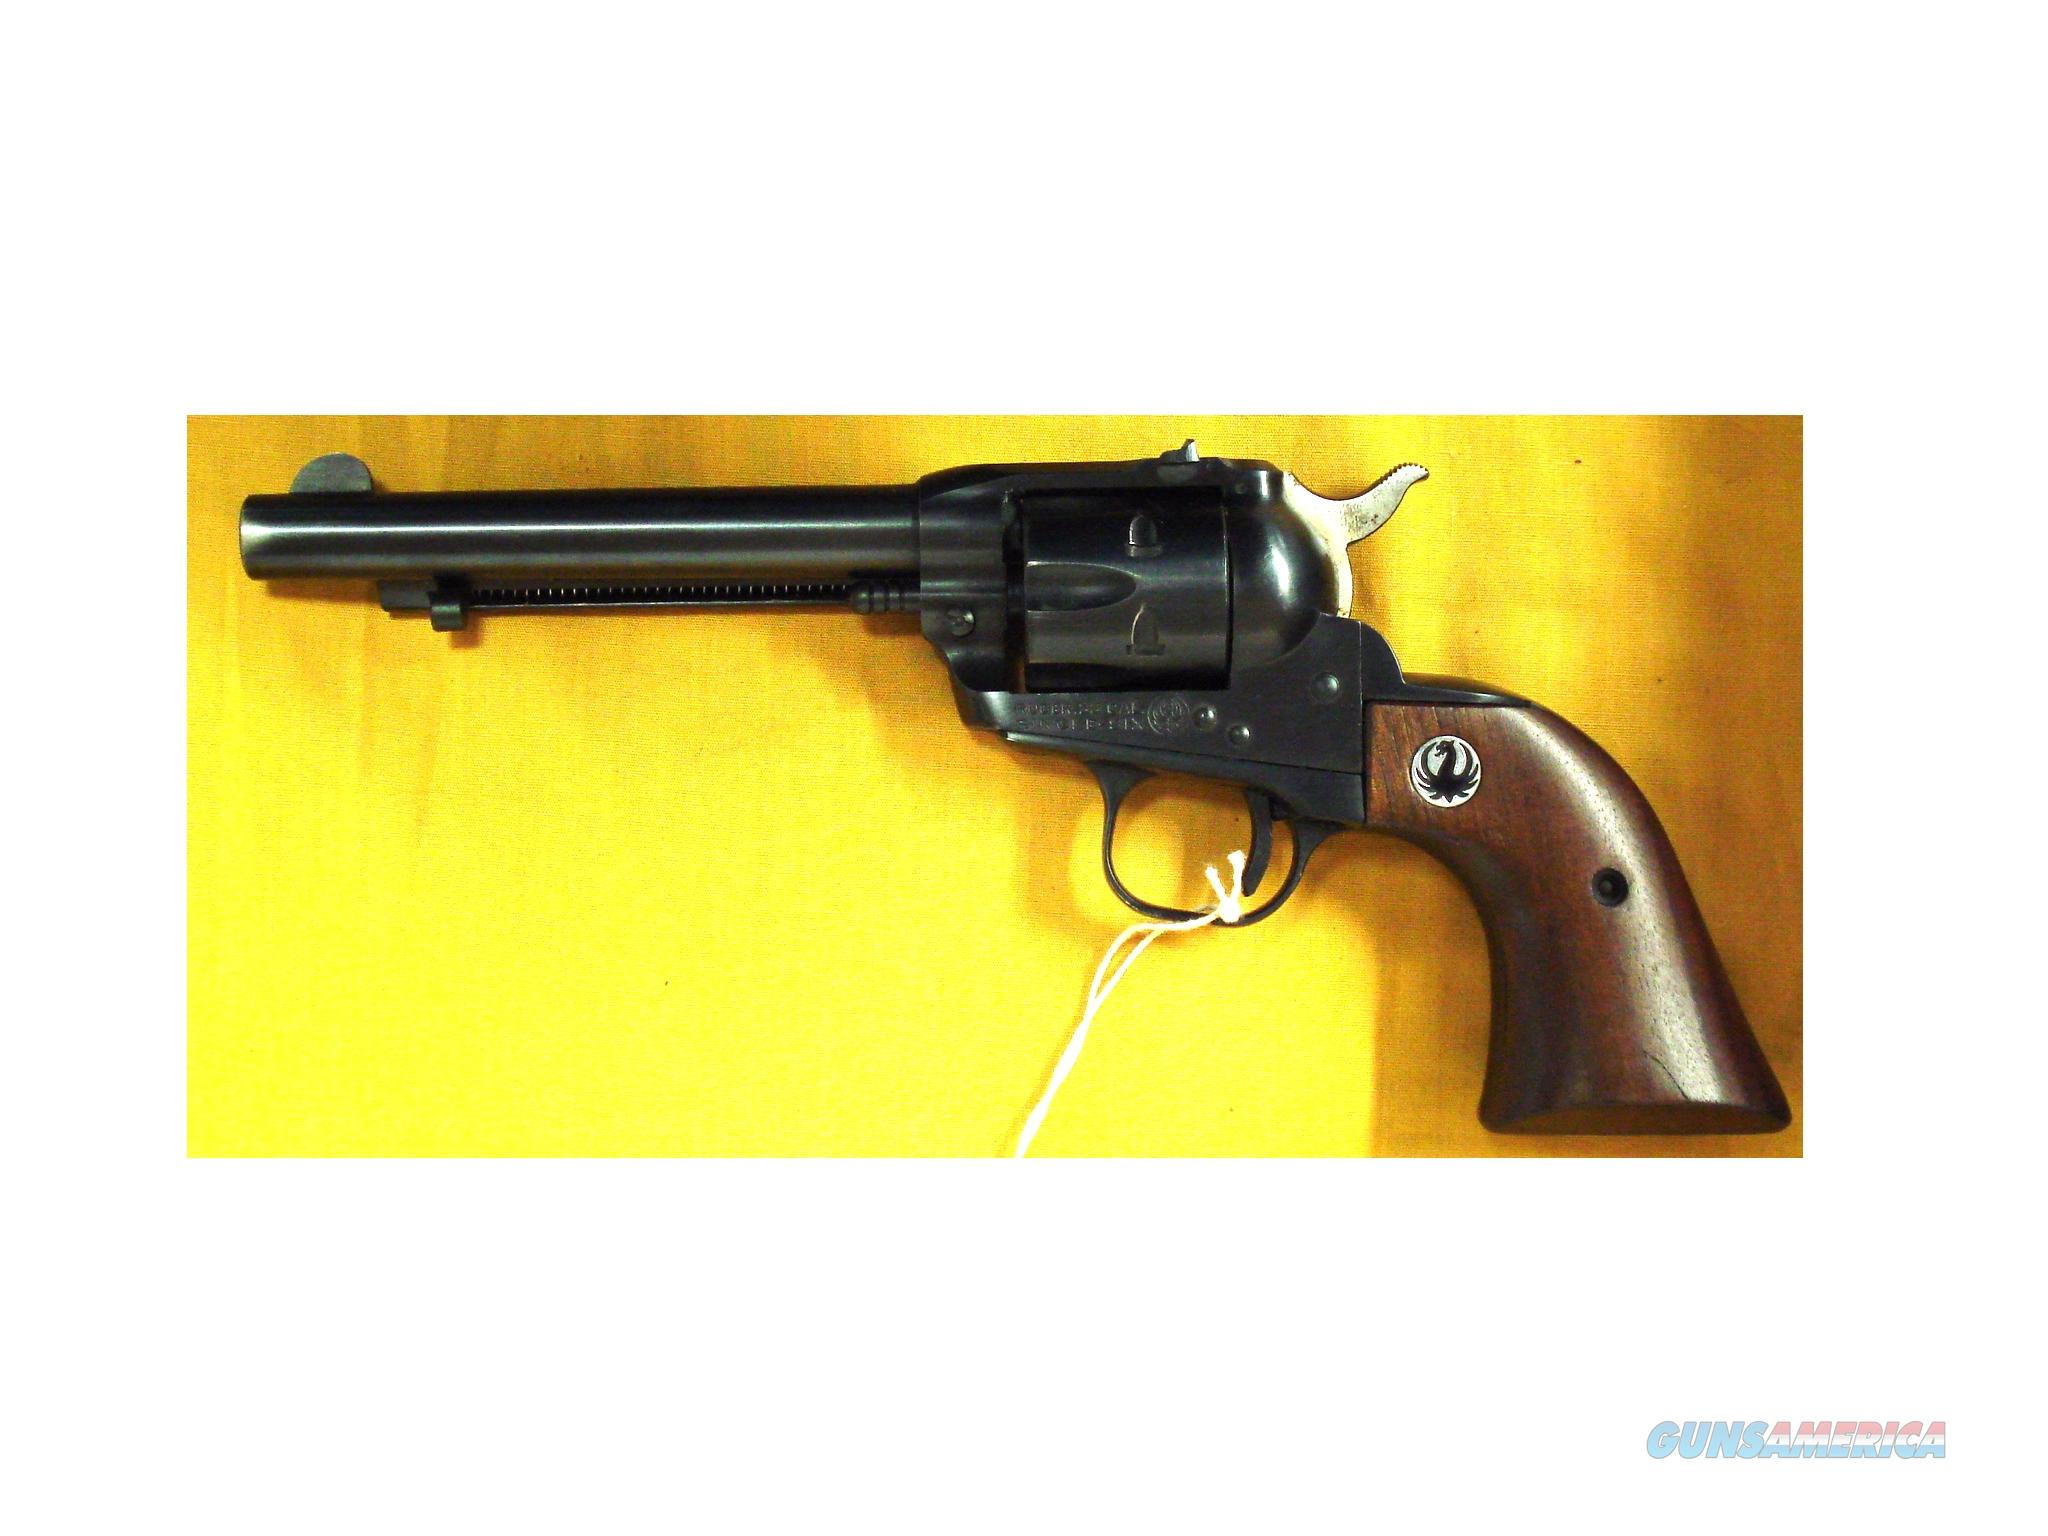 "RUGER SINGLE 6 .22LR 5 1/2"" BARREL 3 SCREW (113)  Guns > Pistols > Ruger Single Action Revolvers > Single Six Type"